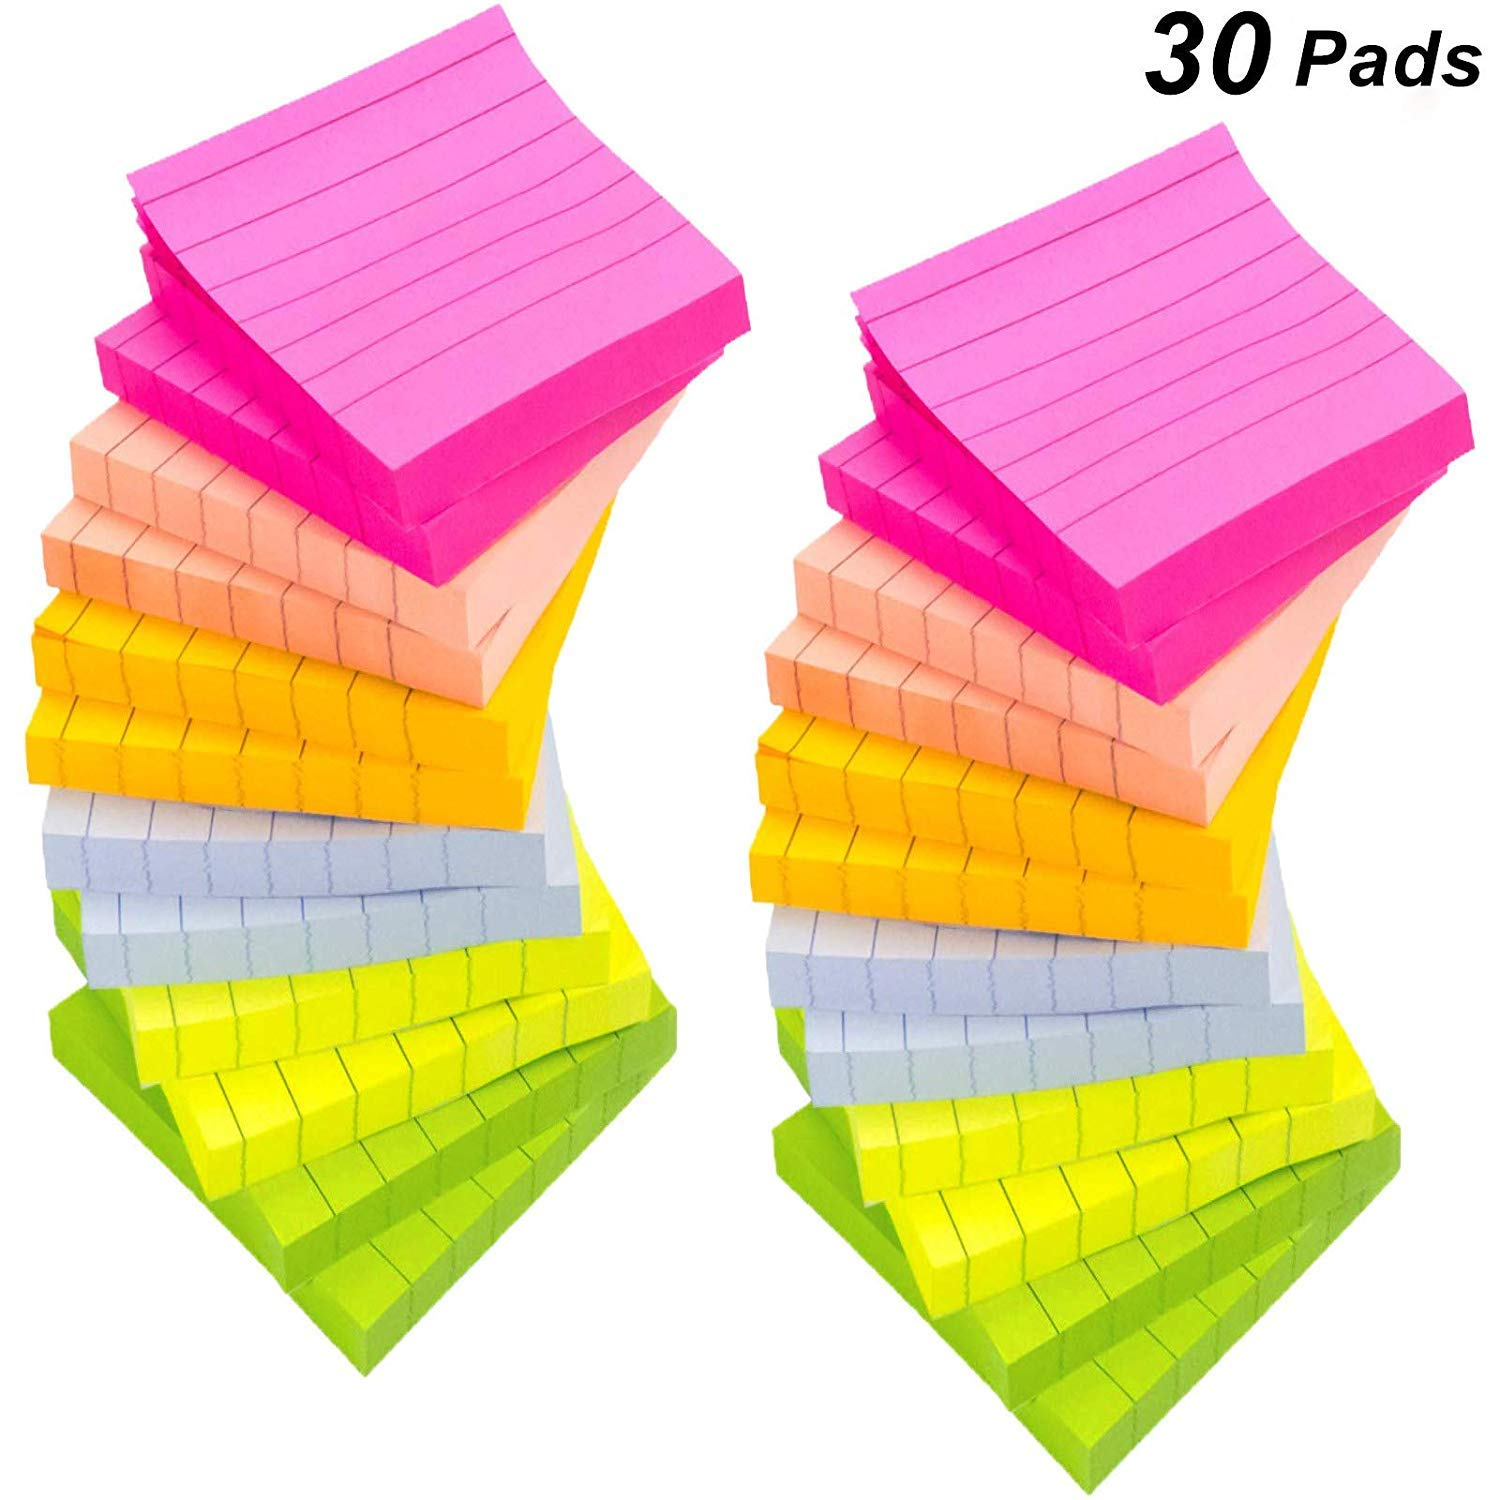 30 Pads/Packs Lined Sticky Notes, 6 Bright Color Self-Stick Notes Pads with Lines, 3 x 3 inch, 80 Sheets/Pad, Neon Paper & Assorted Colors, Easy Post Notes for Study, Works, Office by YXTH